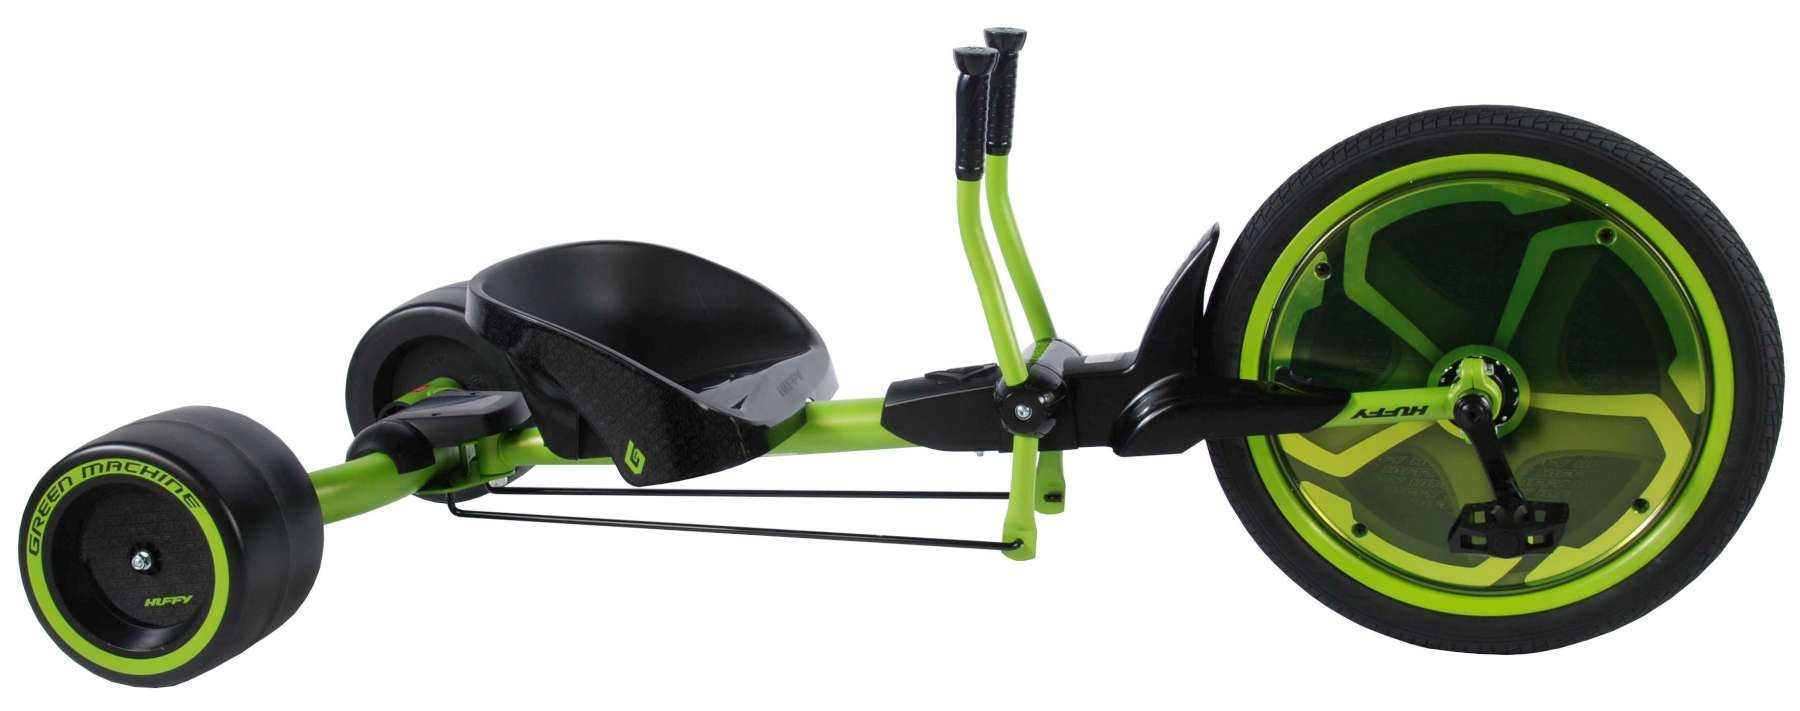 66ecdbc0b Huffy Green Machine 20 Inch Junior Green/Black - Internet-Toys